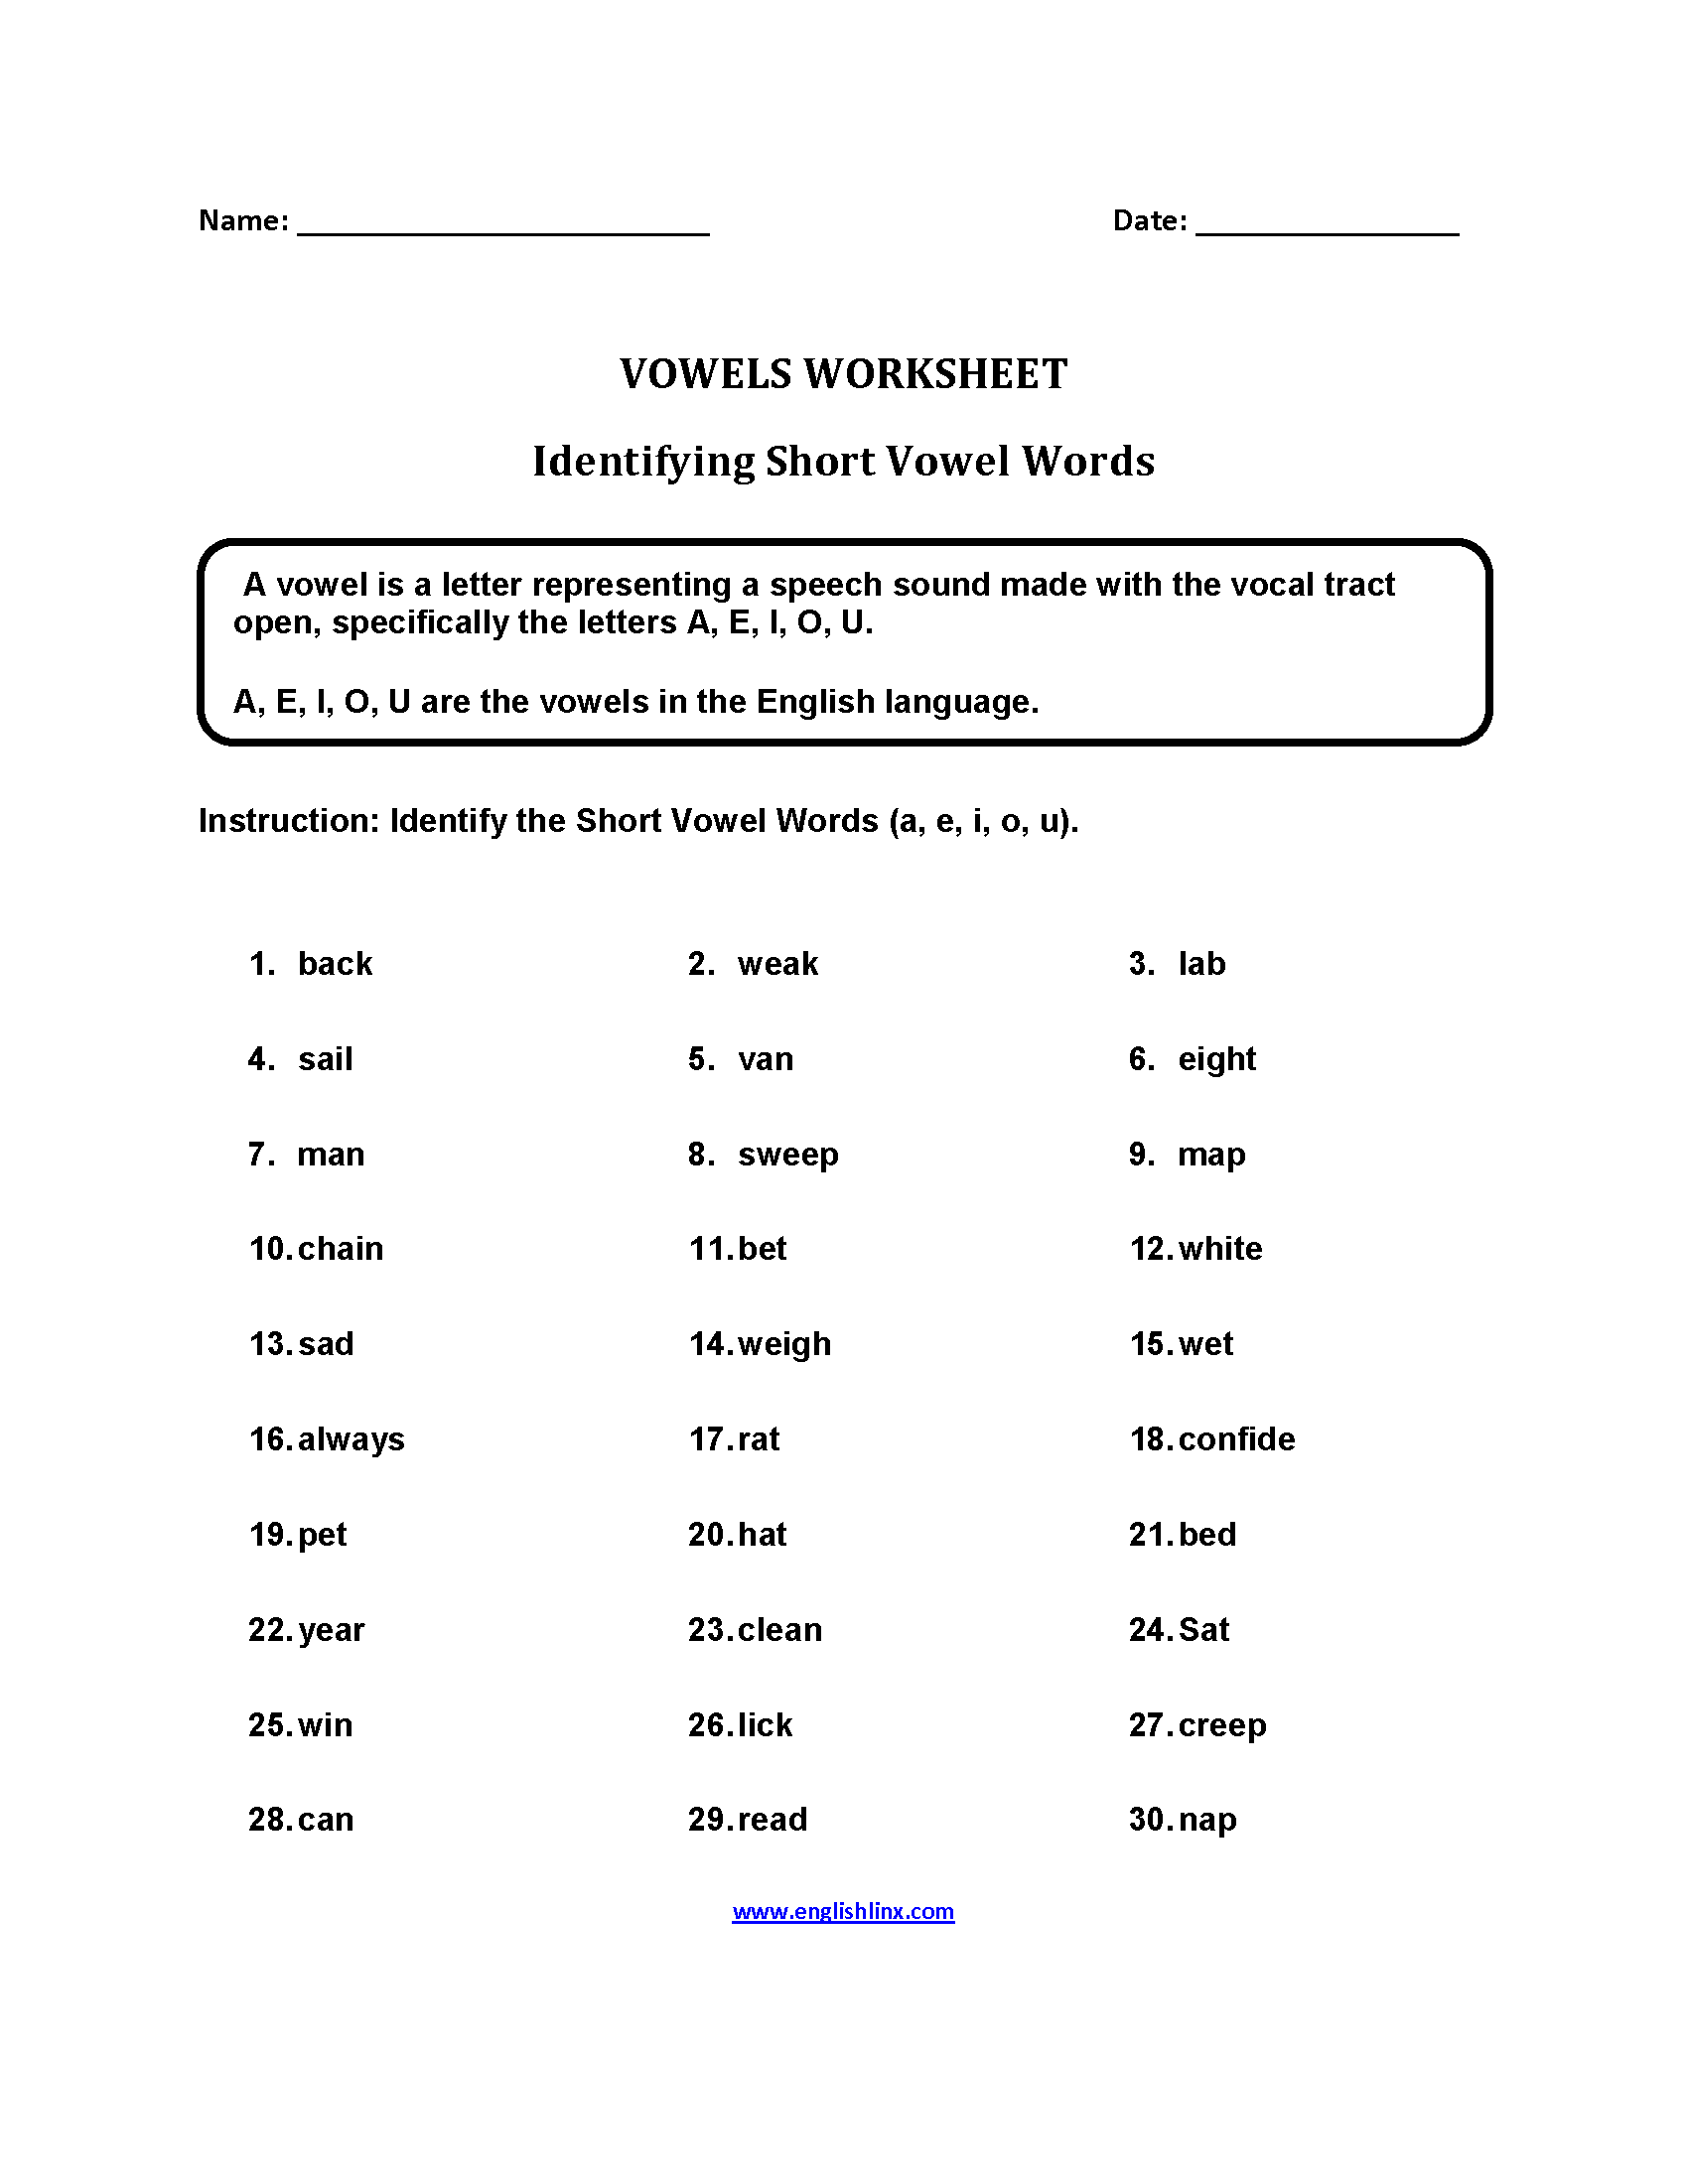 worksheet Short Vowel Reading Worksheets englishlinx com vowels worksheets short vowel words worksheets